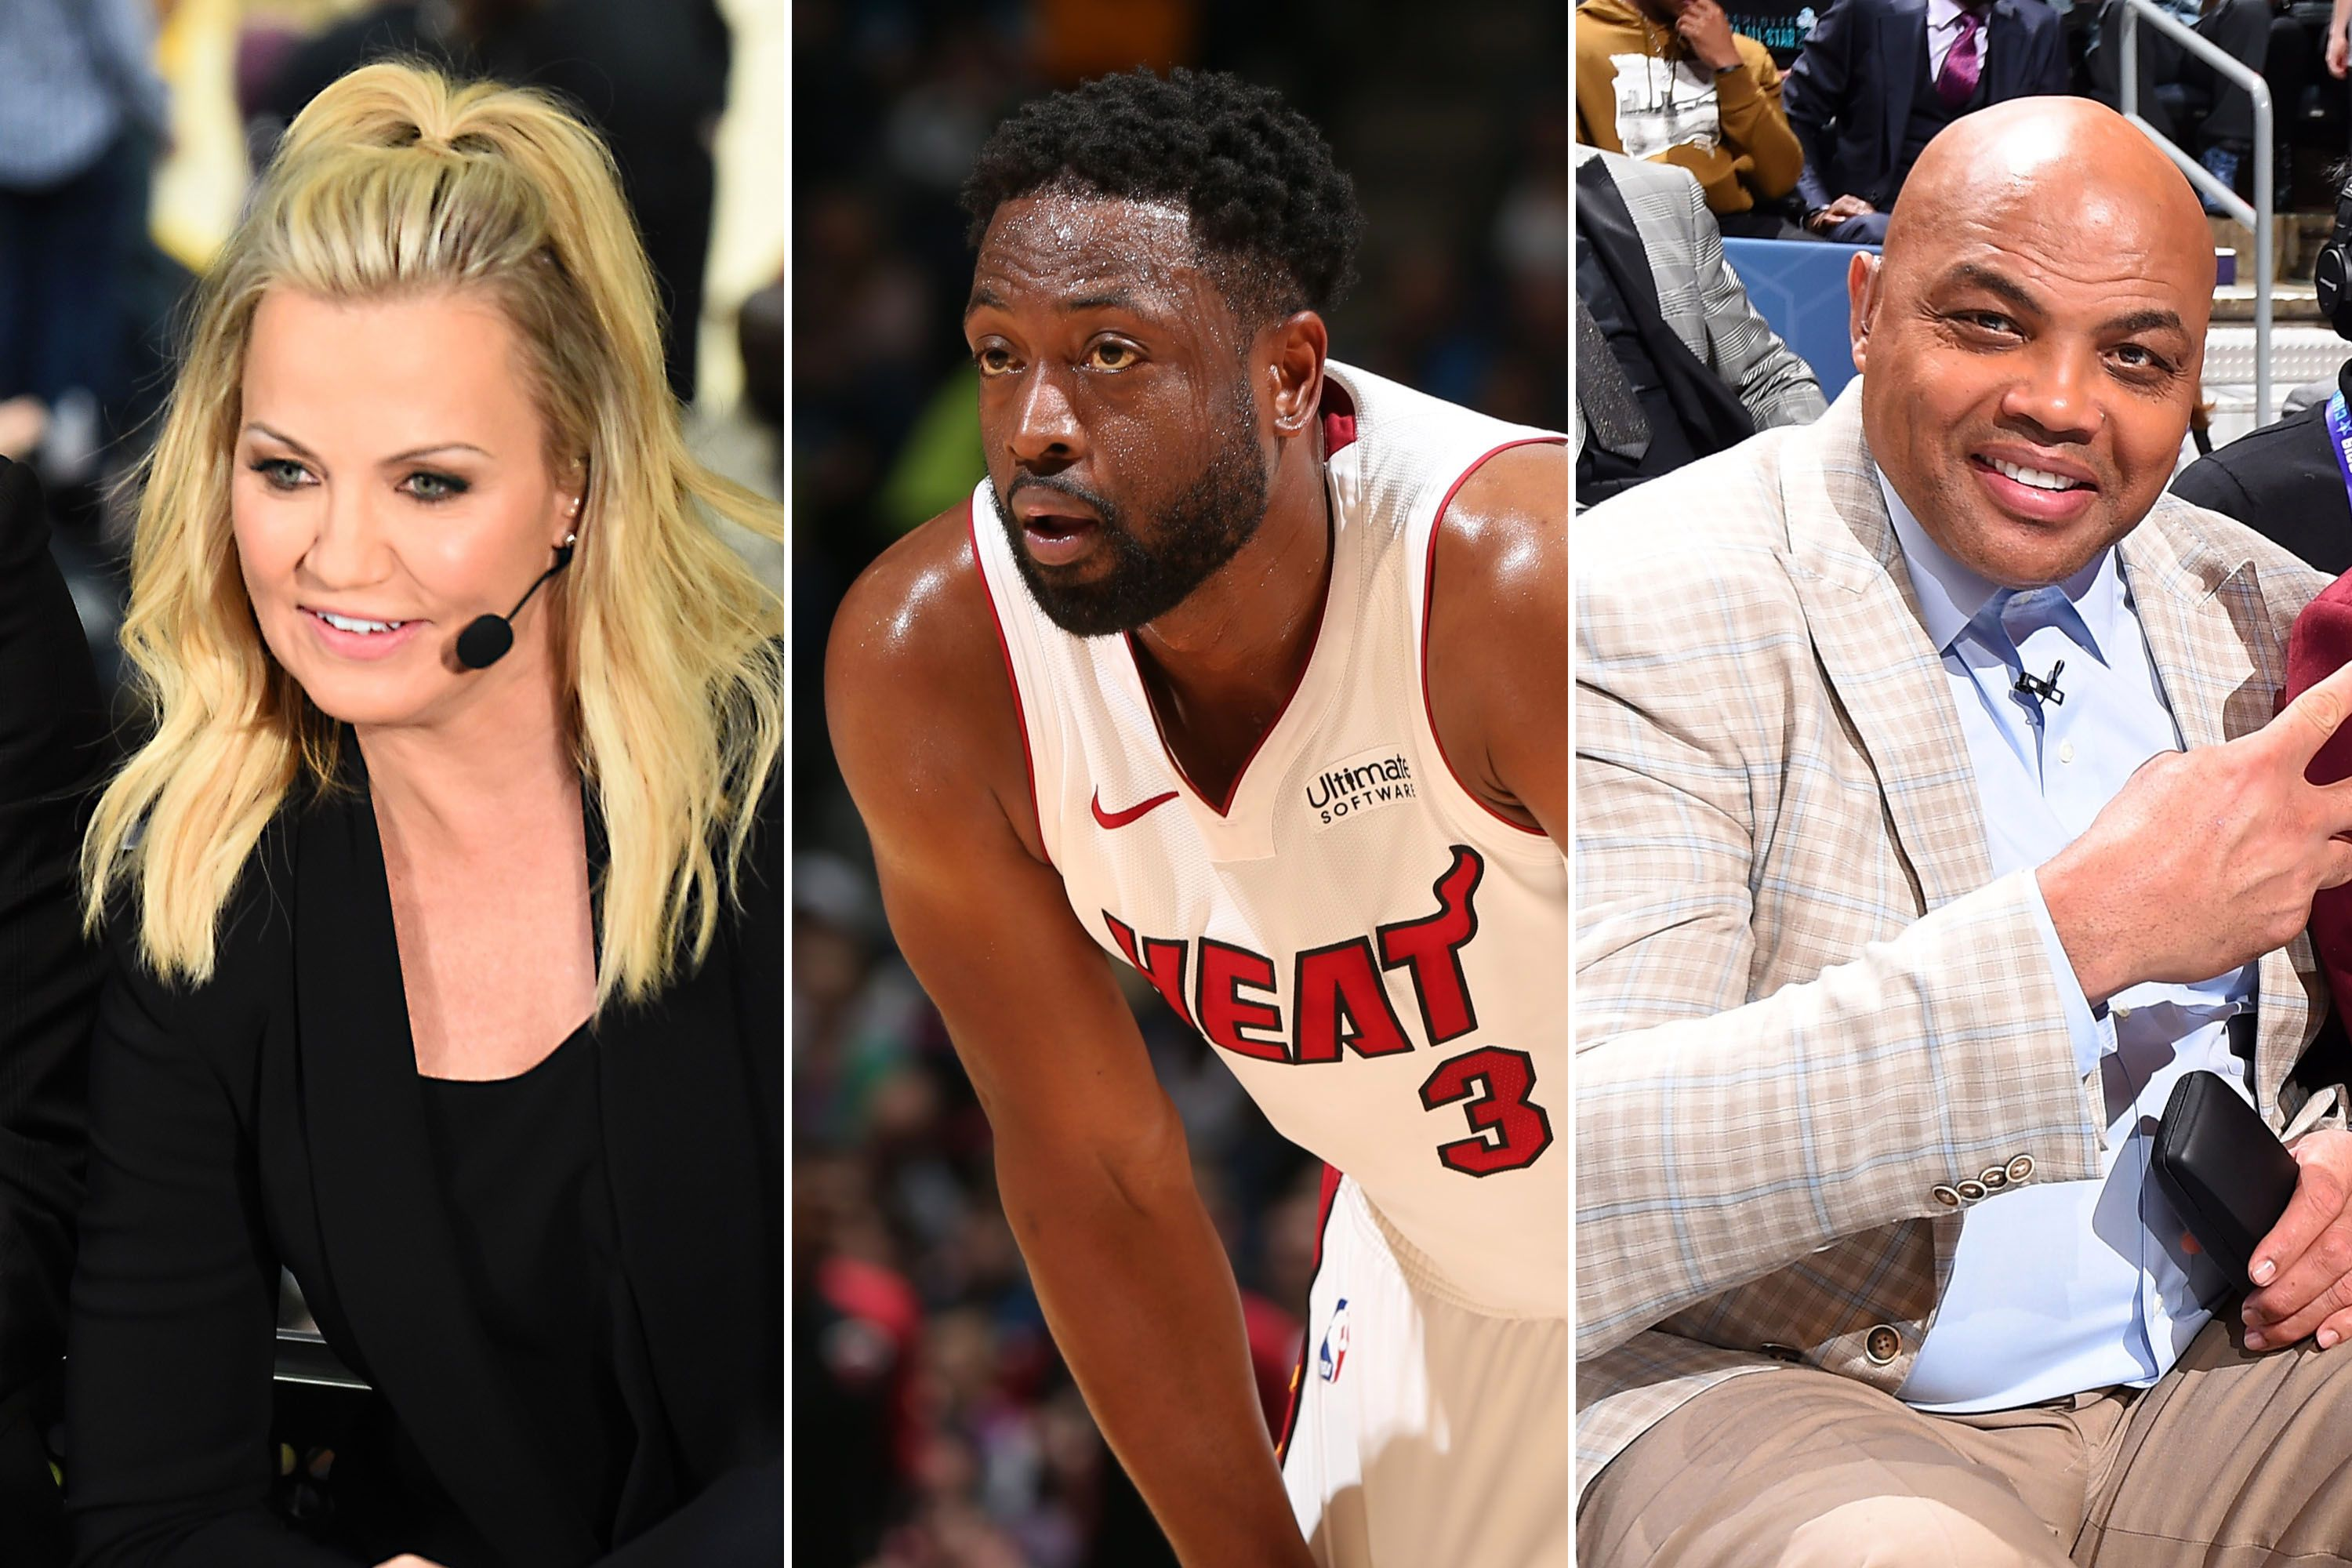 Report: ESPN and TNT Fighting Over Dwyane Wade for Studio Analyst Position